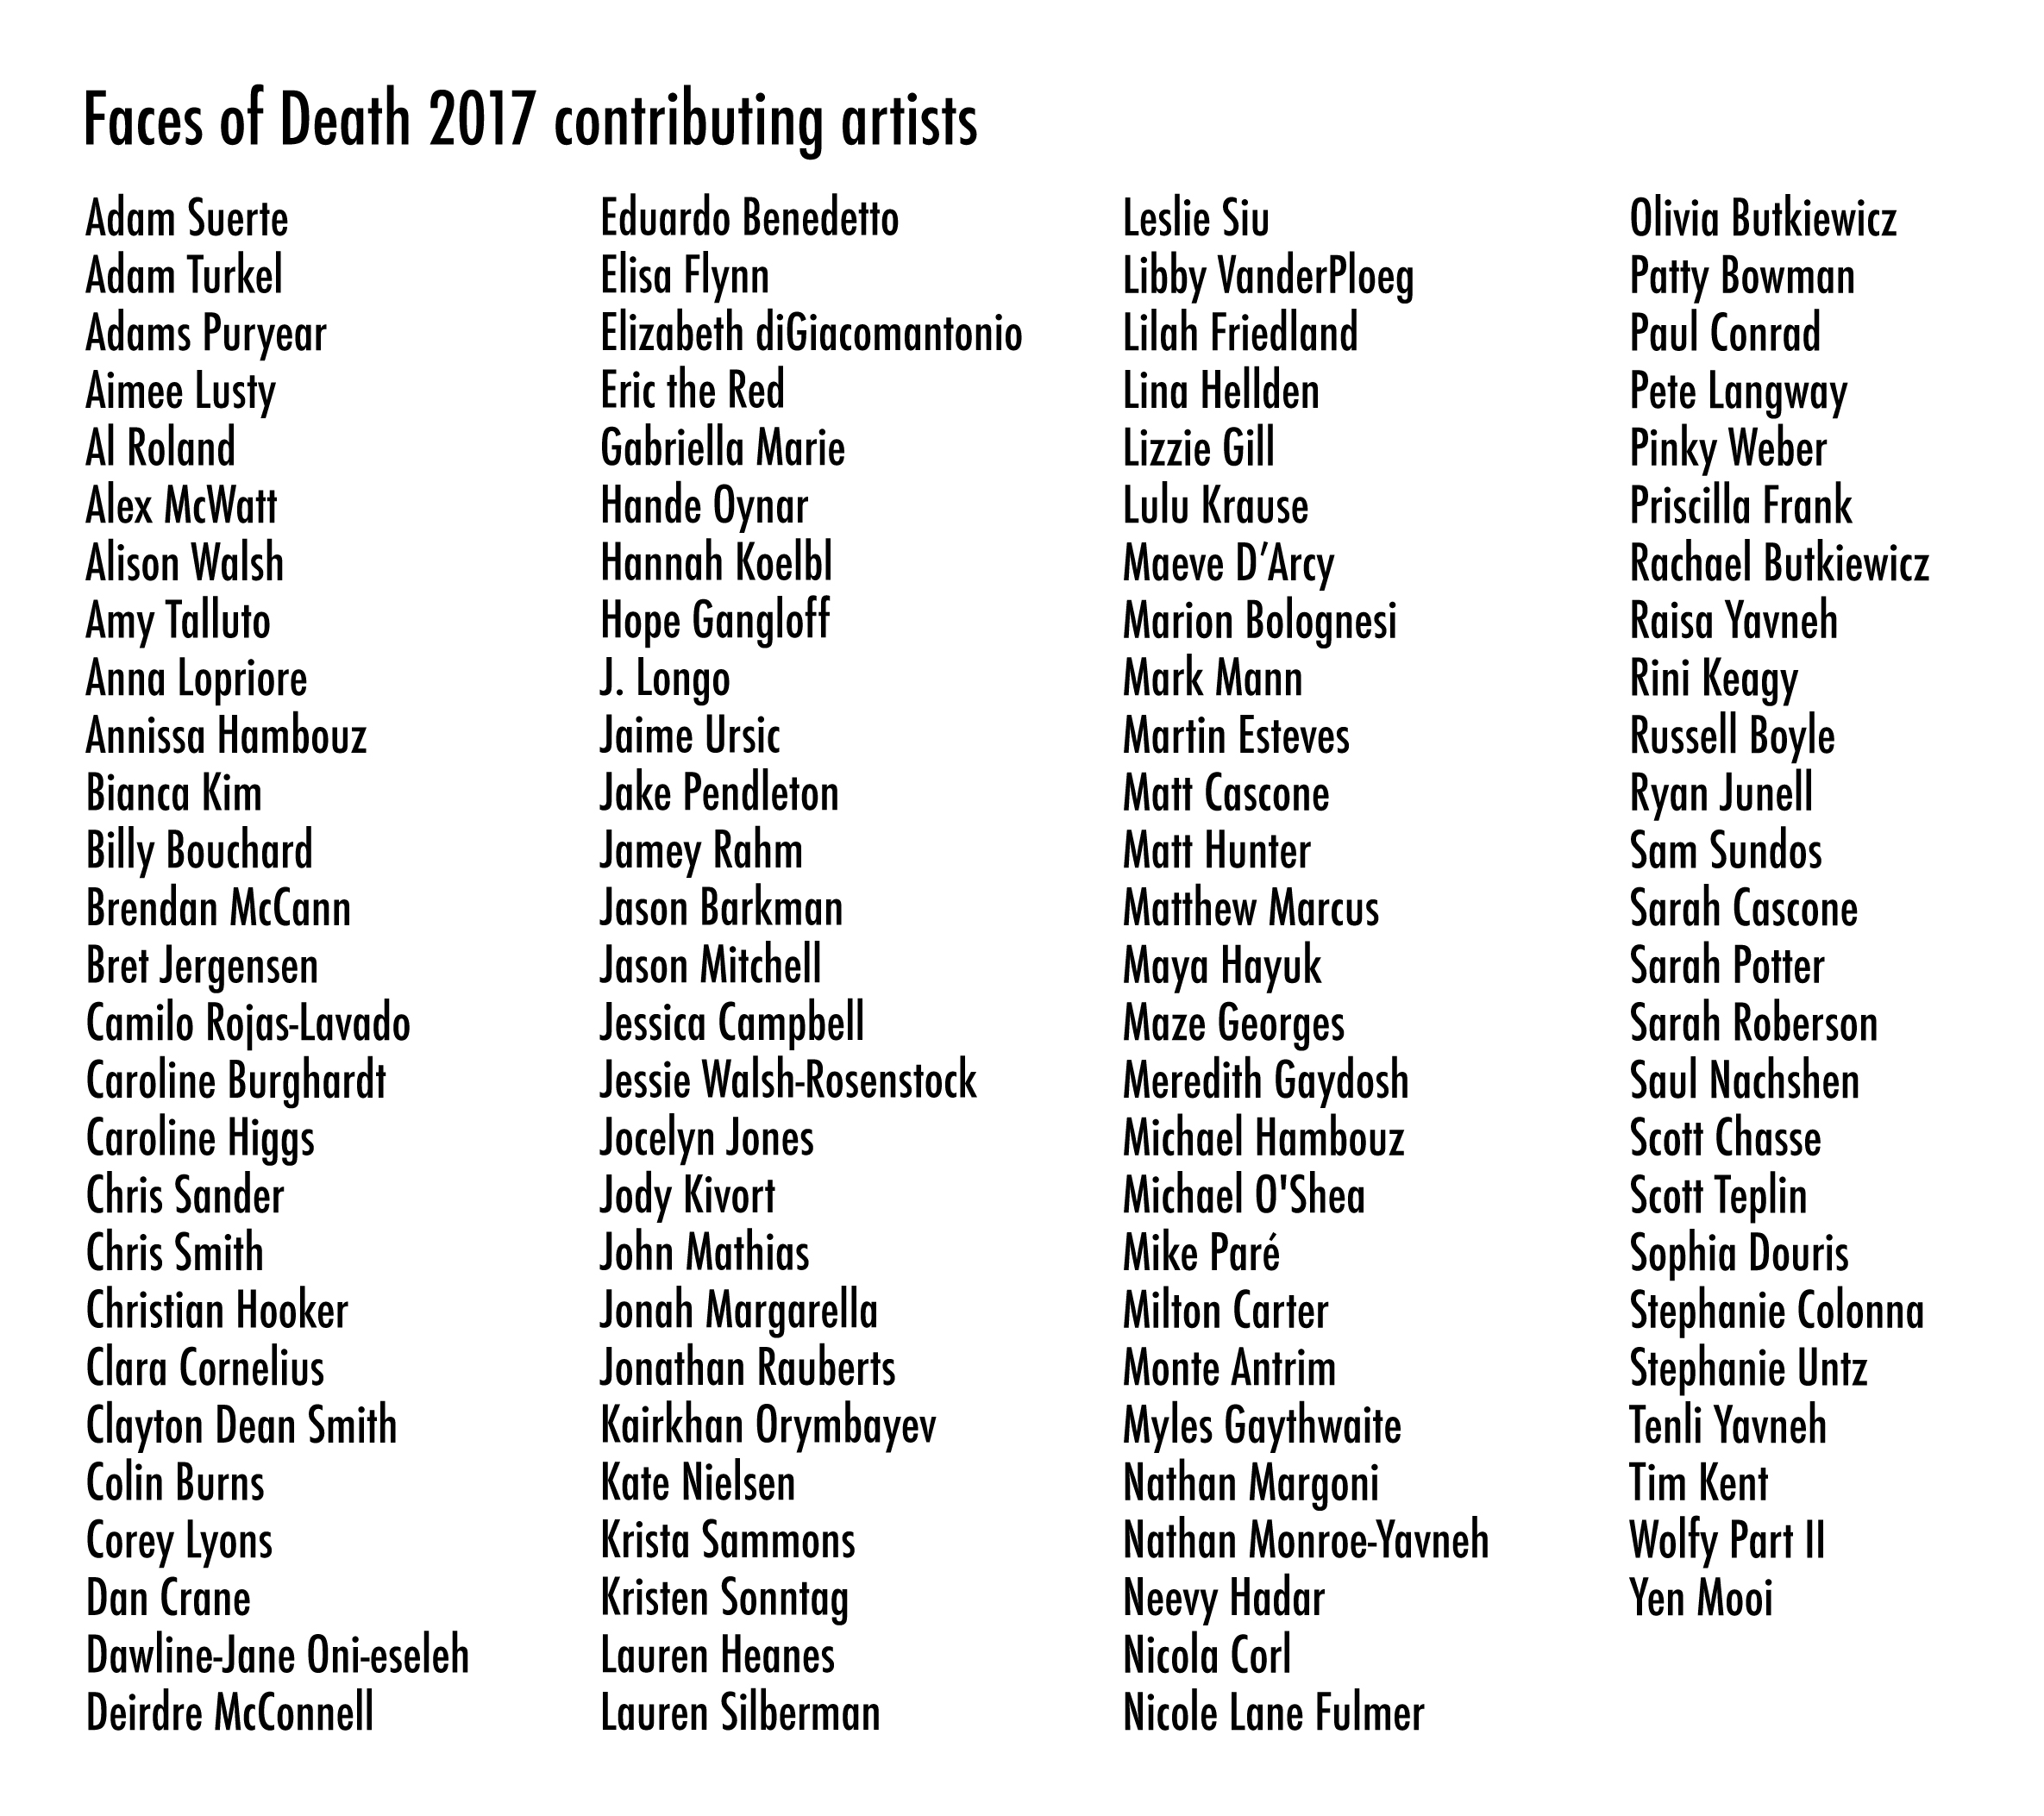 FOD2017_Artist List_unnumbered.jpg